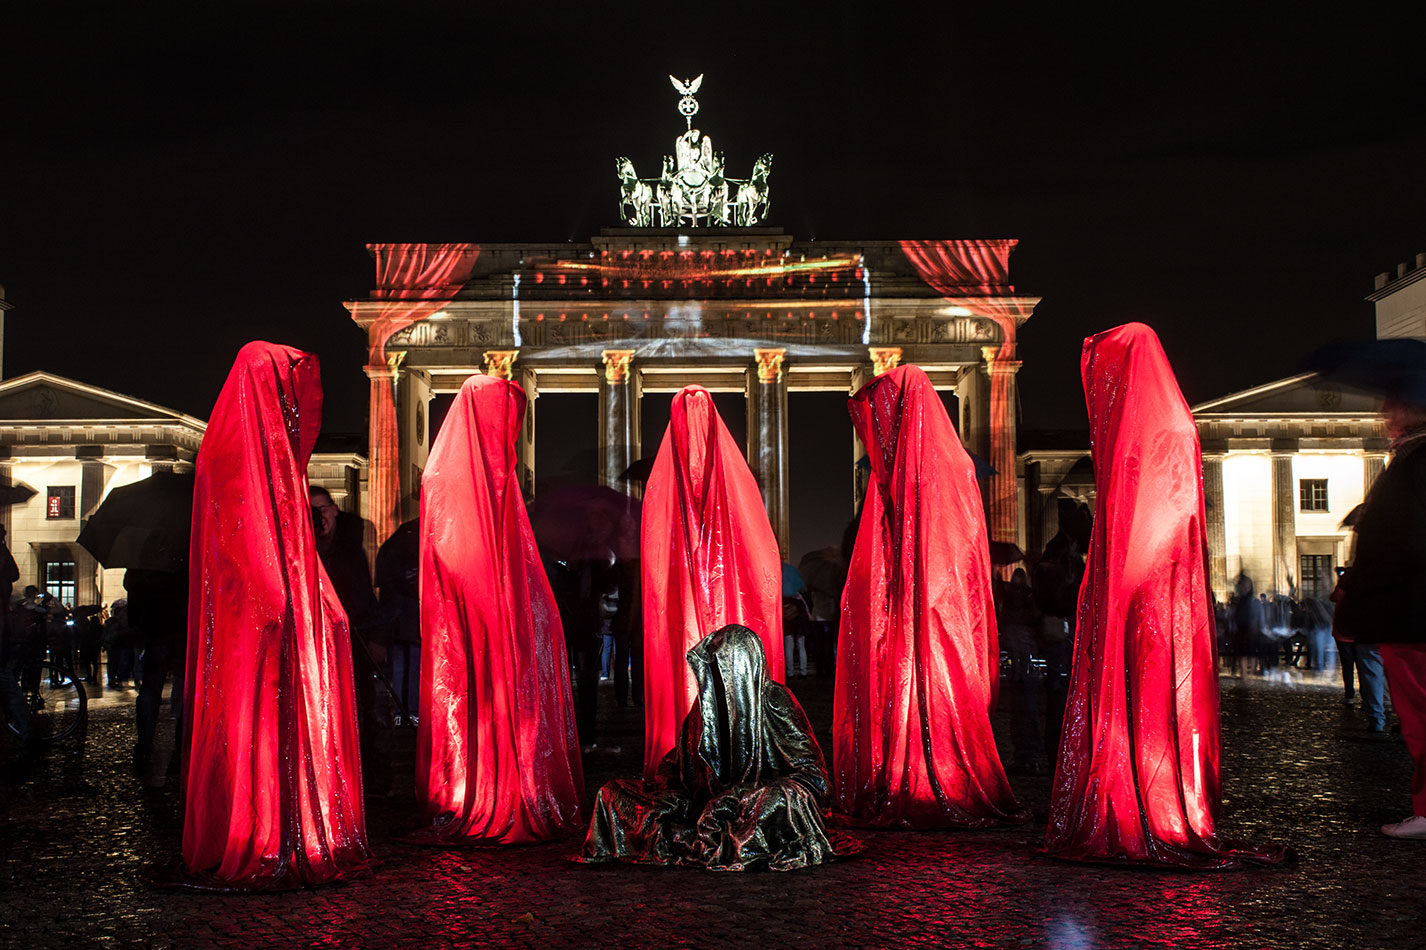 festival-of-lights-berlin-brandenburg-gate-light-art-show-exhibition-lumina-guardians-of-time-manfred-kili-kielnhofer-contemporary-arts-design-sculpture-3281